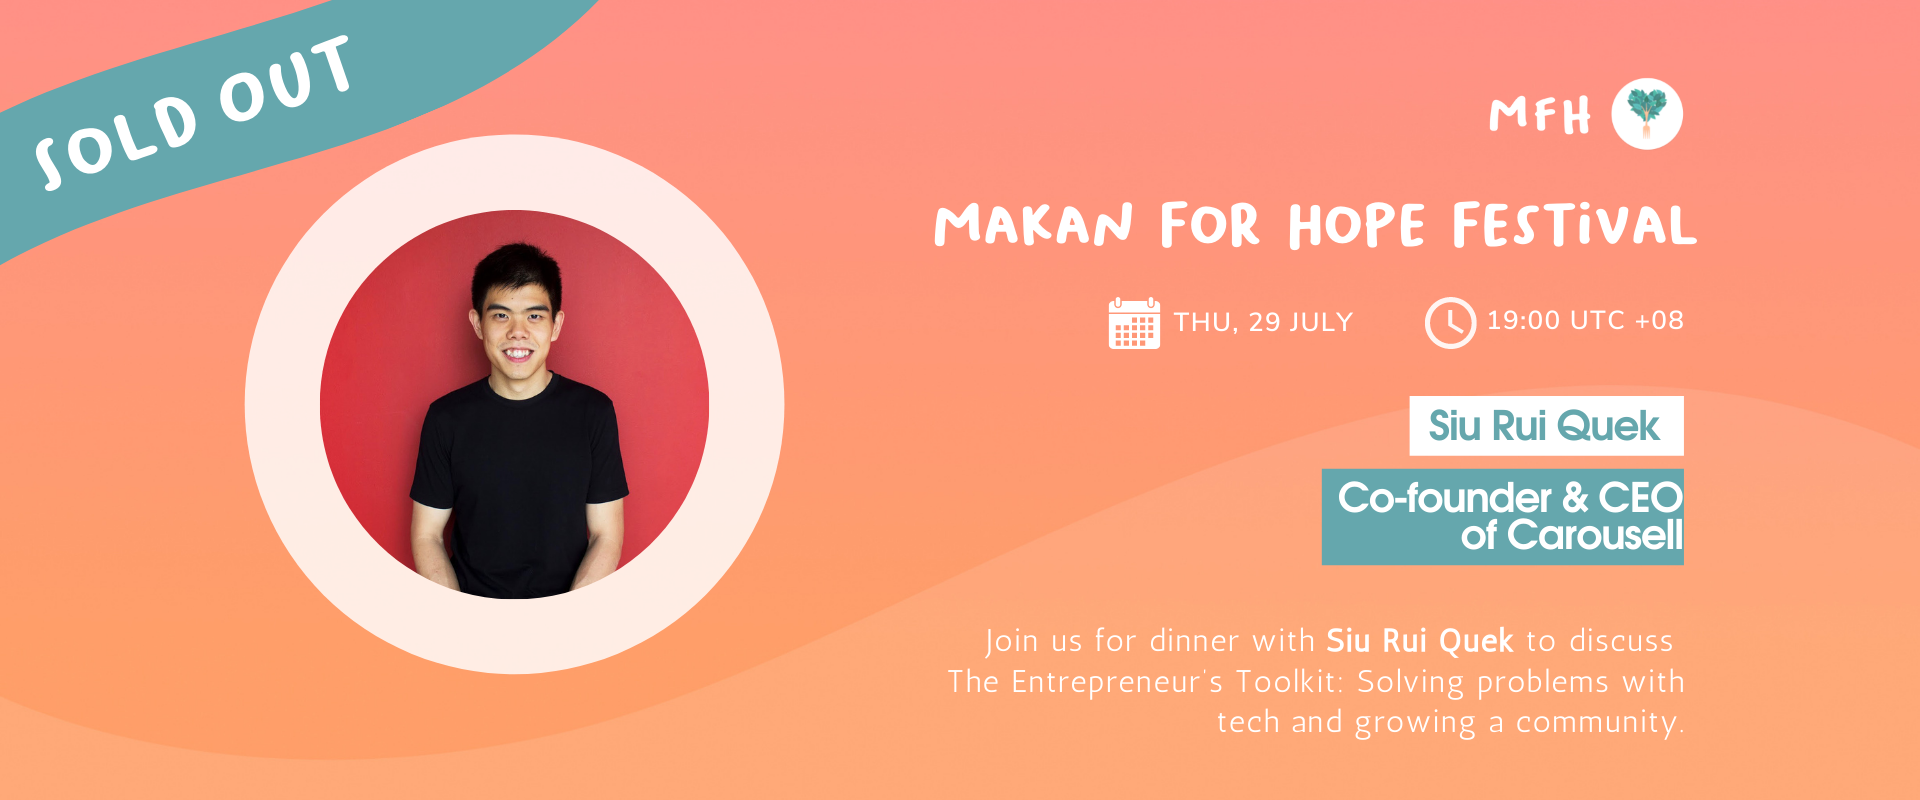 [SOLD OUT!] Siu Rui Quek - The Entrepreneur's Toolkit: Solving Problems with Tech and Growing a Community Banner Image